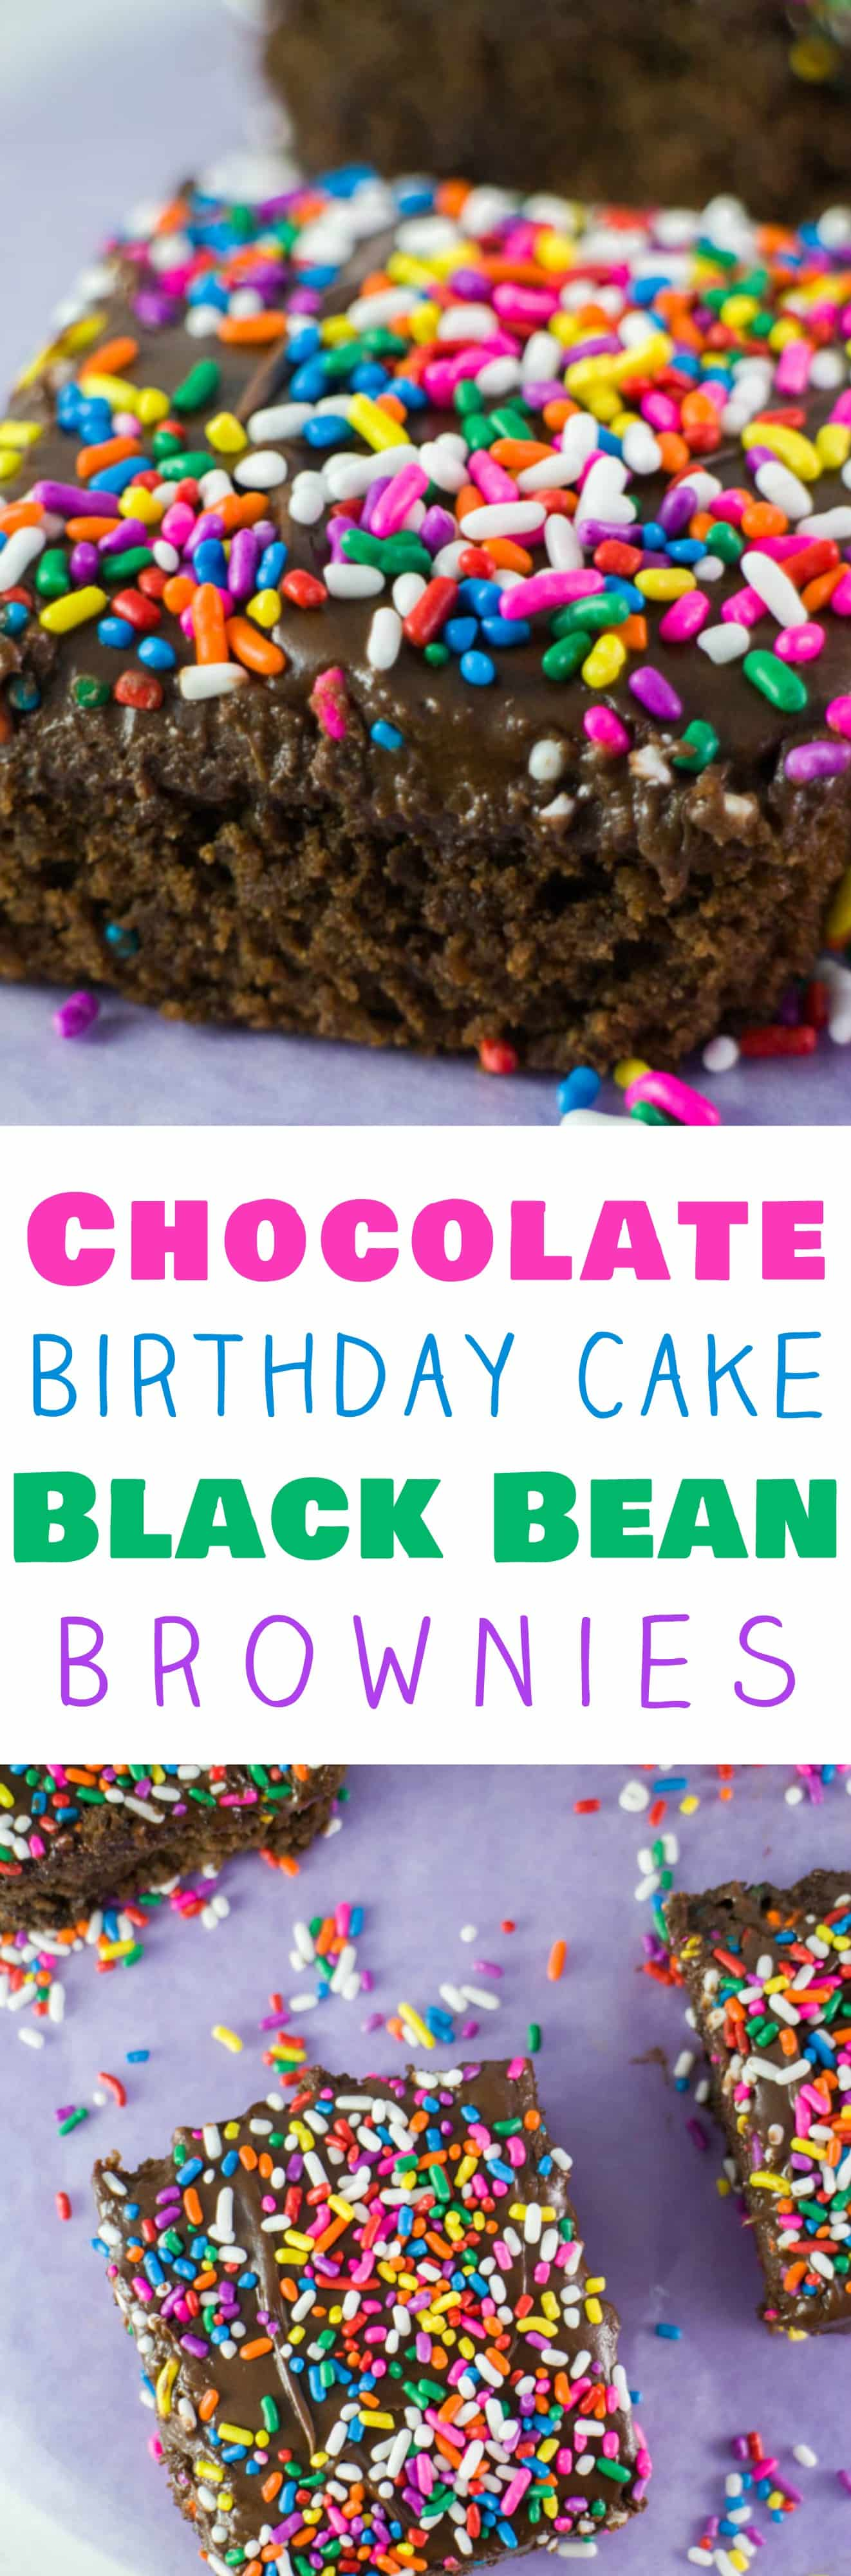 CHOCOLATE SPRINKLED BROWNIES made with BLACK BEANS and APPLESAUCE (healthy and low calorie!) that are easy to make!  These homemade chocolate brownies are super fudgy and moist! My family considers this the BEST brownies recipe!  The rainbow sprinkles on top make the brownies really pretty!